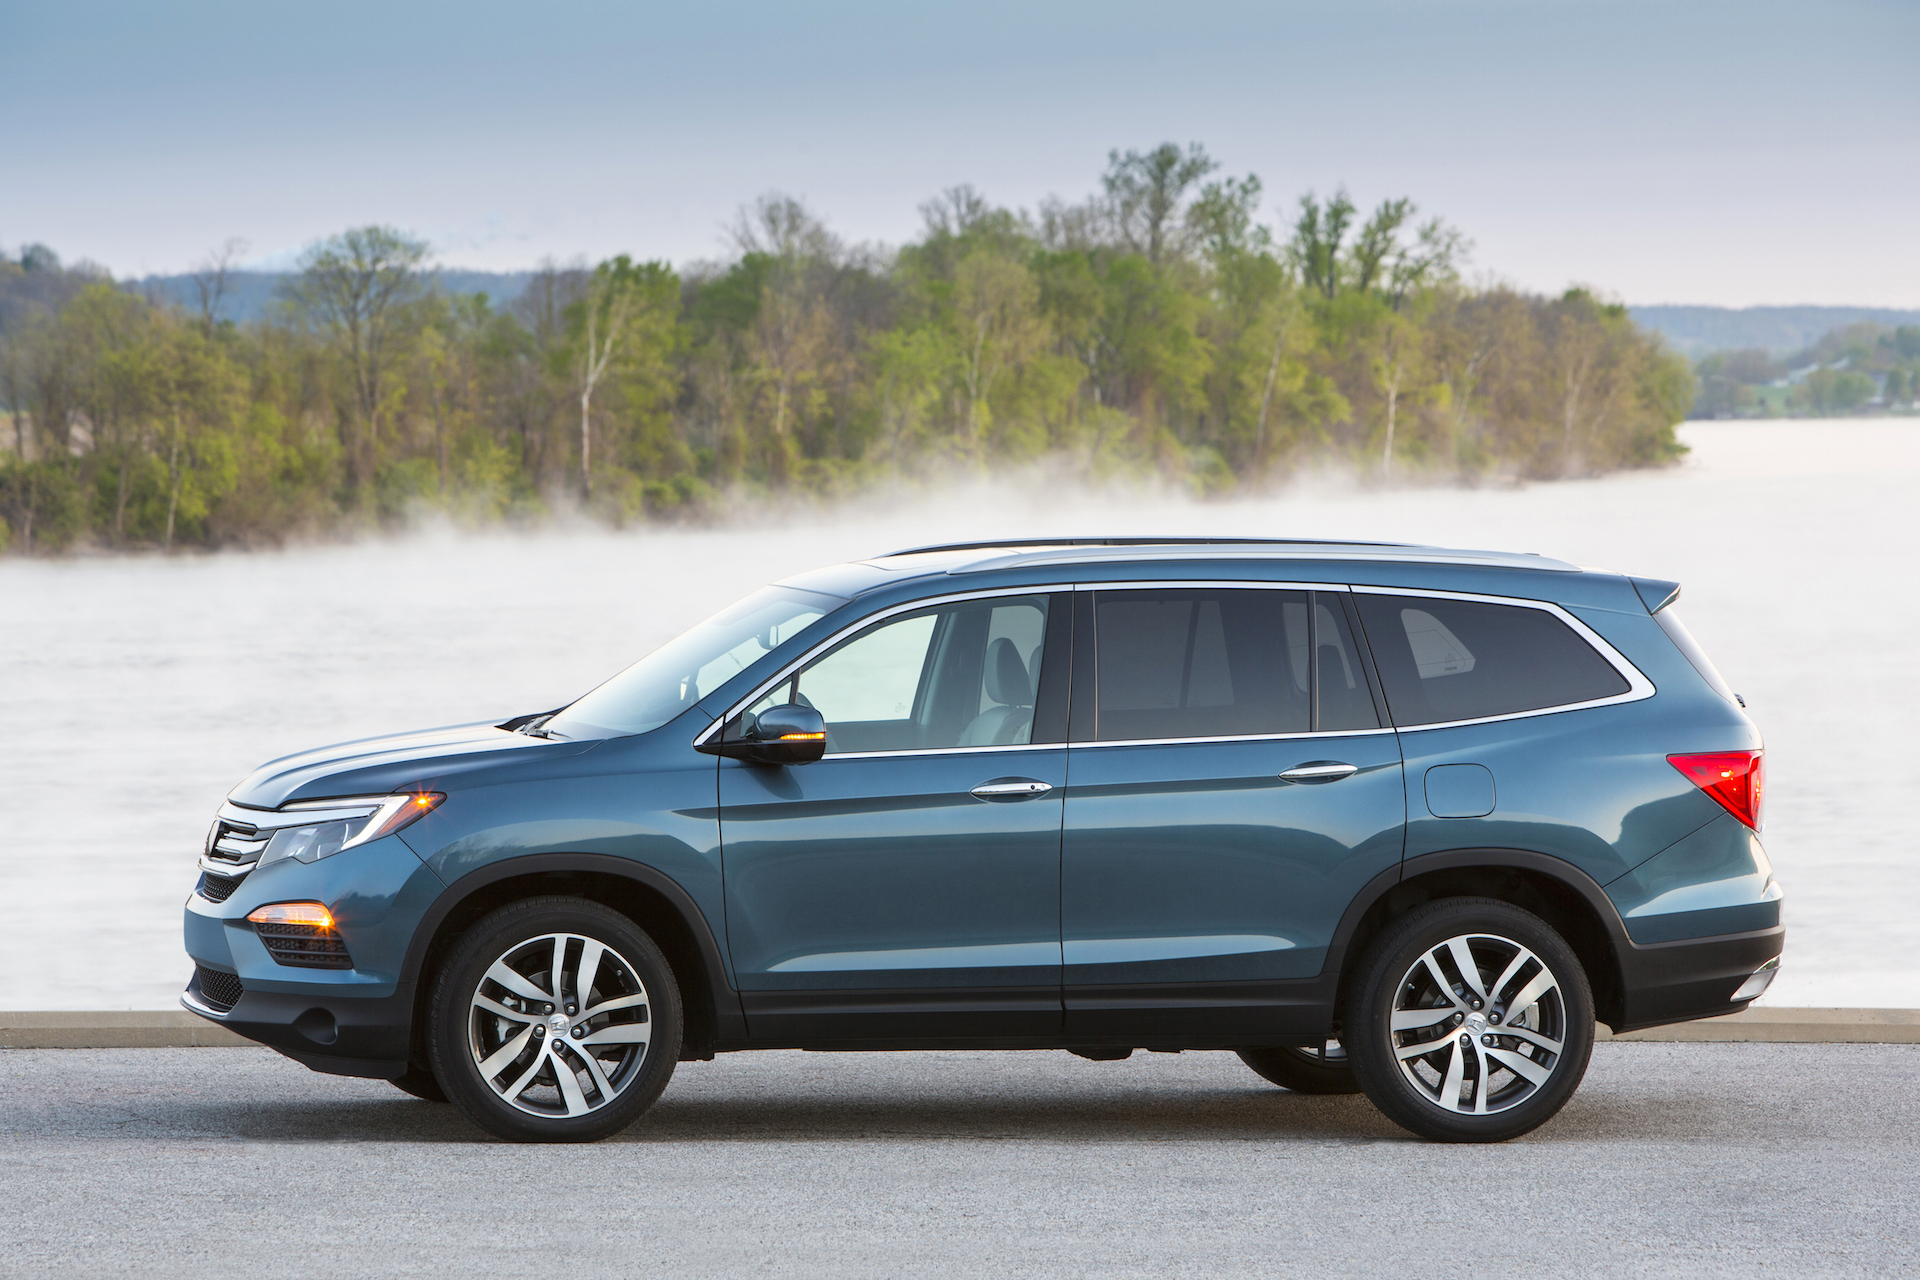 2016 honda pilot given top safety rating by iihs. Black Bedroom Furniture Sets. Home Design Ideas